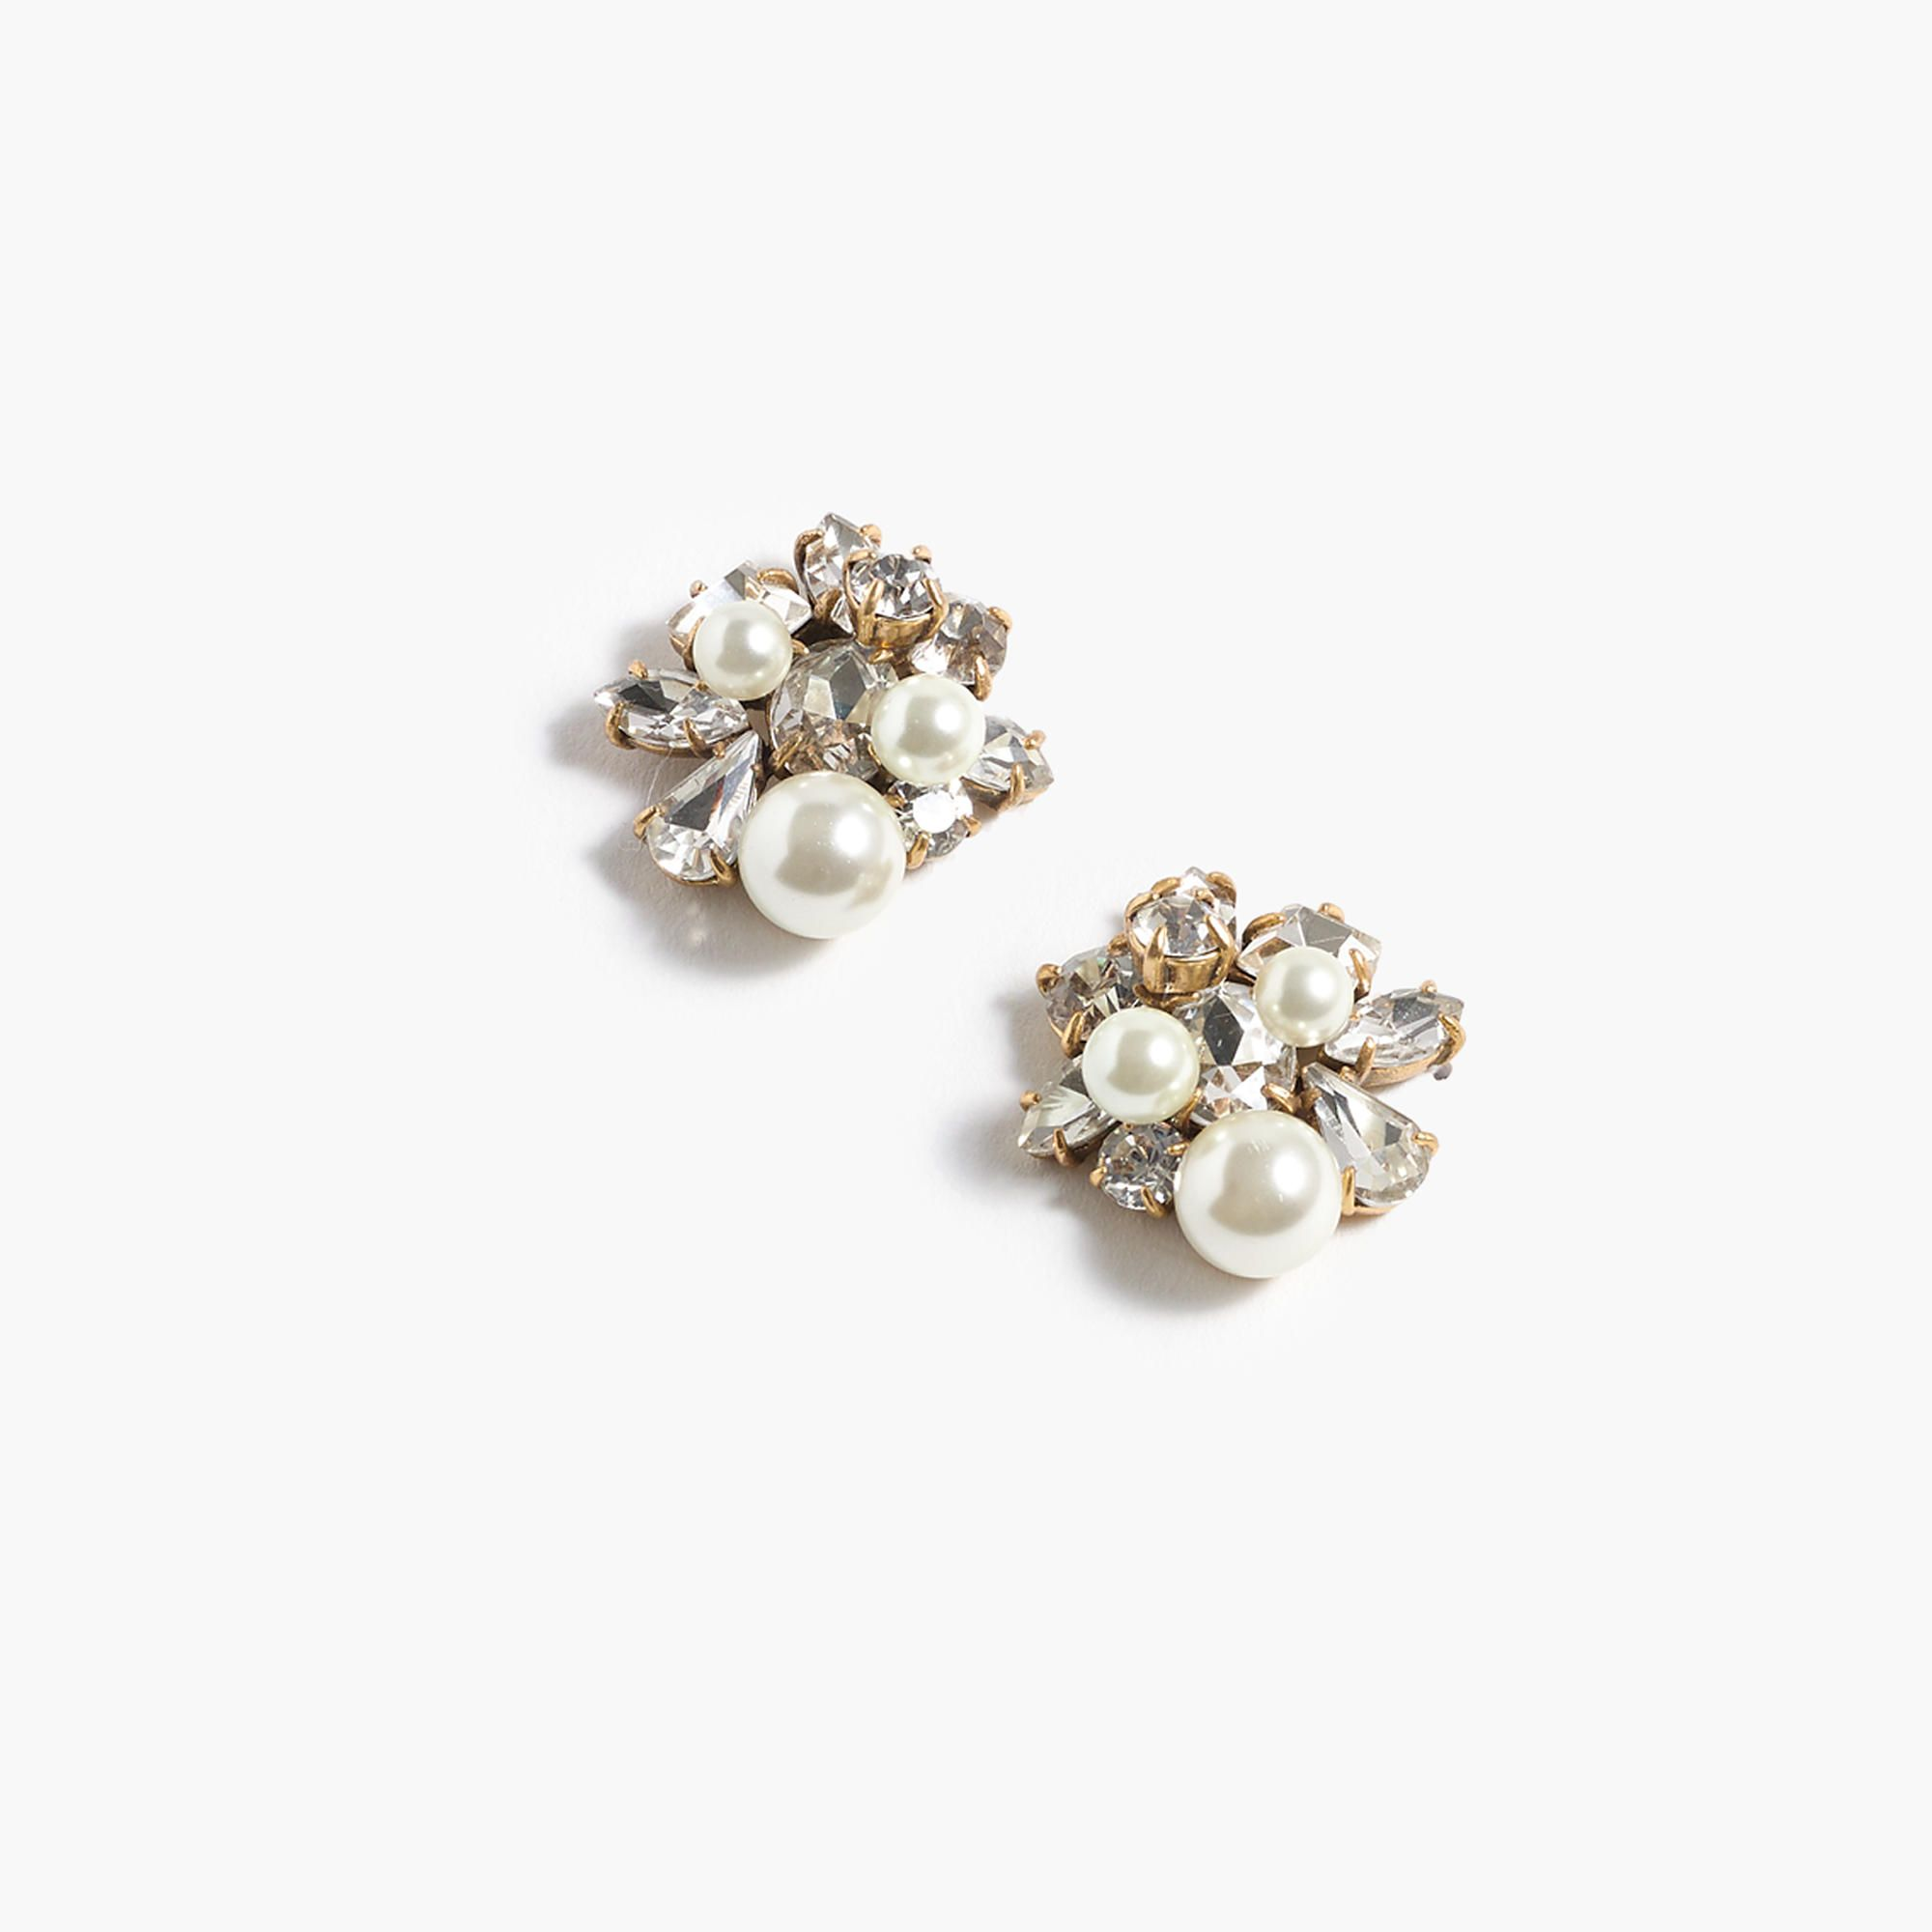 Shop the Pearl And Crystal Earrings at JCrewcom and see our entire